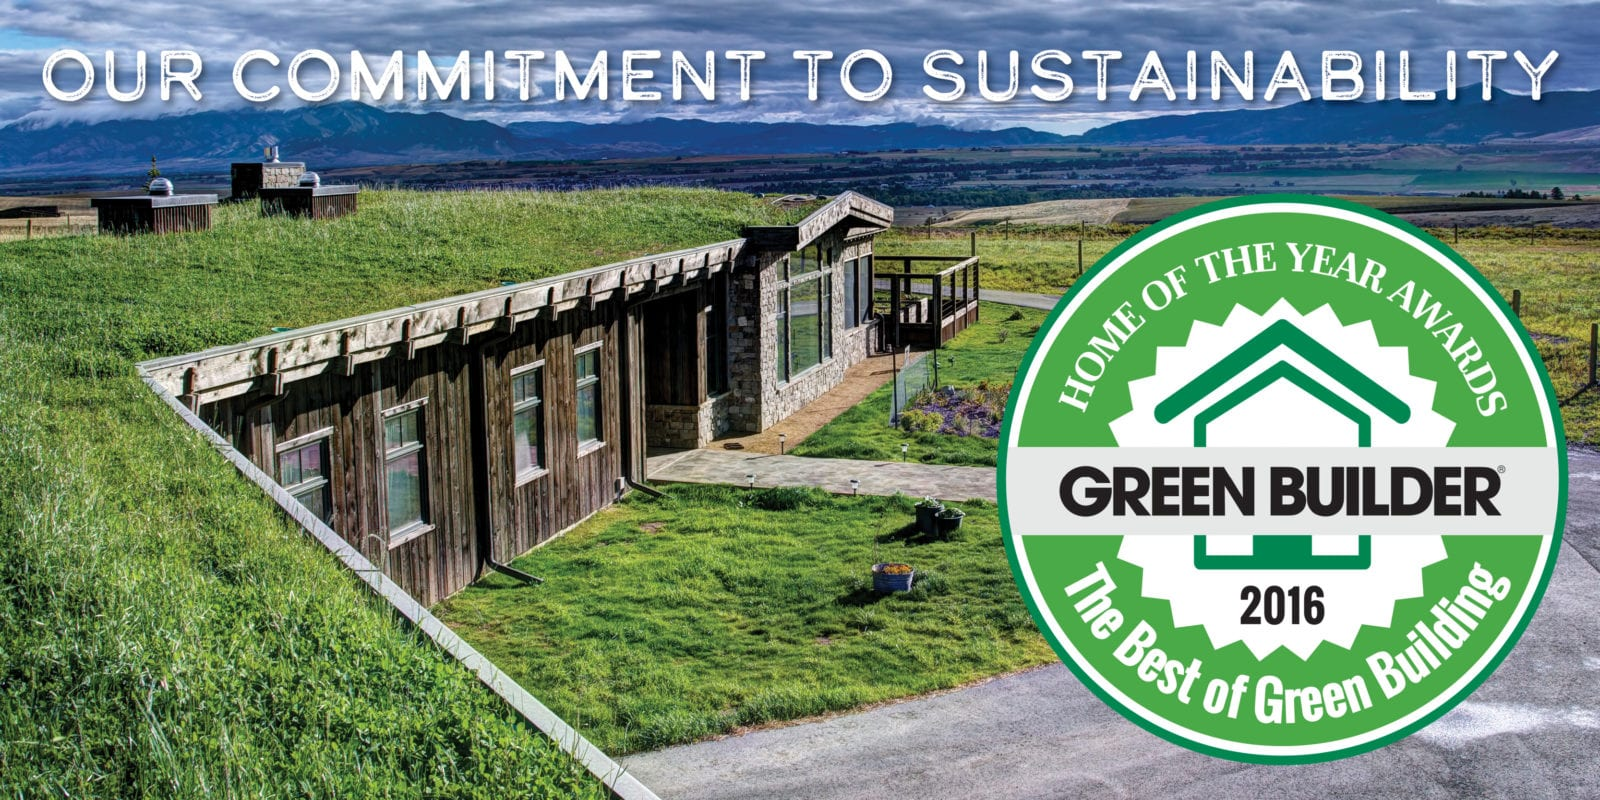 Our Commitment to Sustainable Building